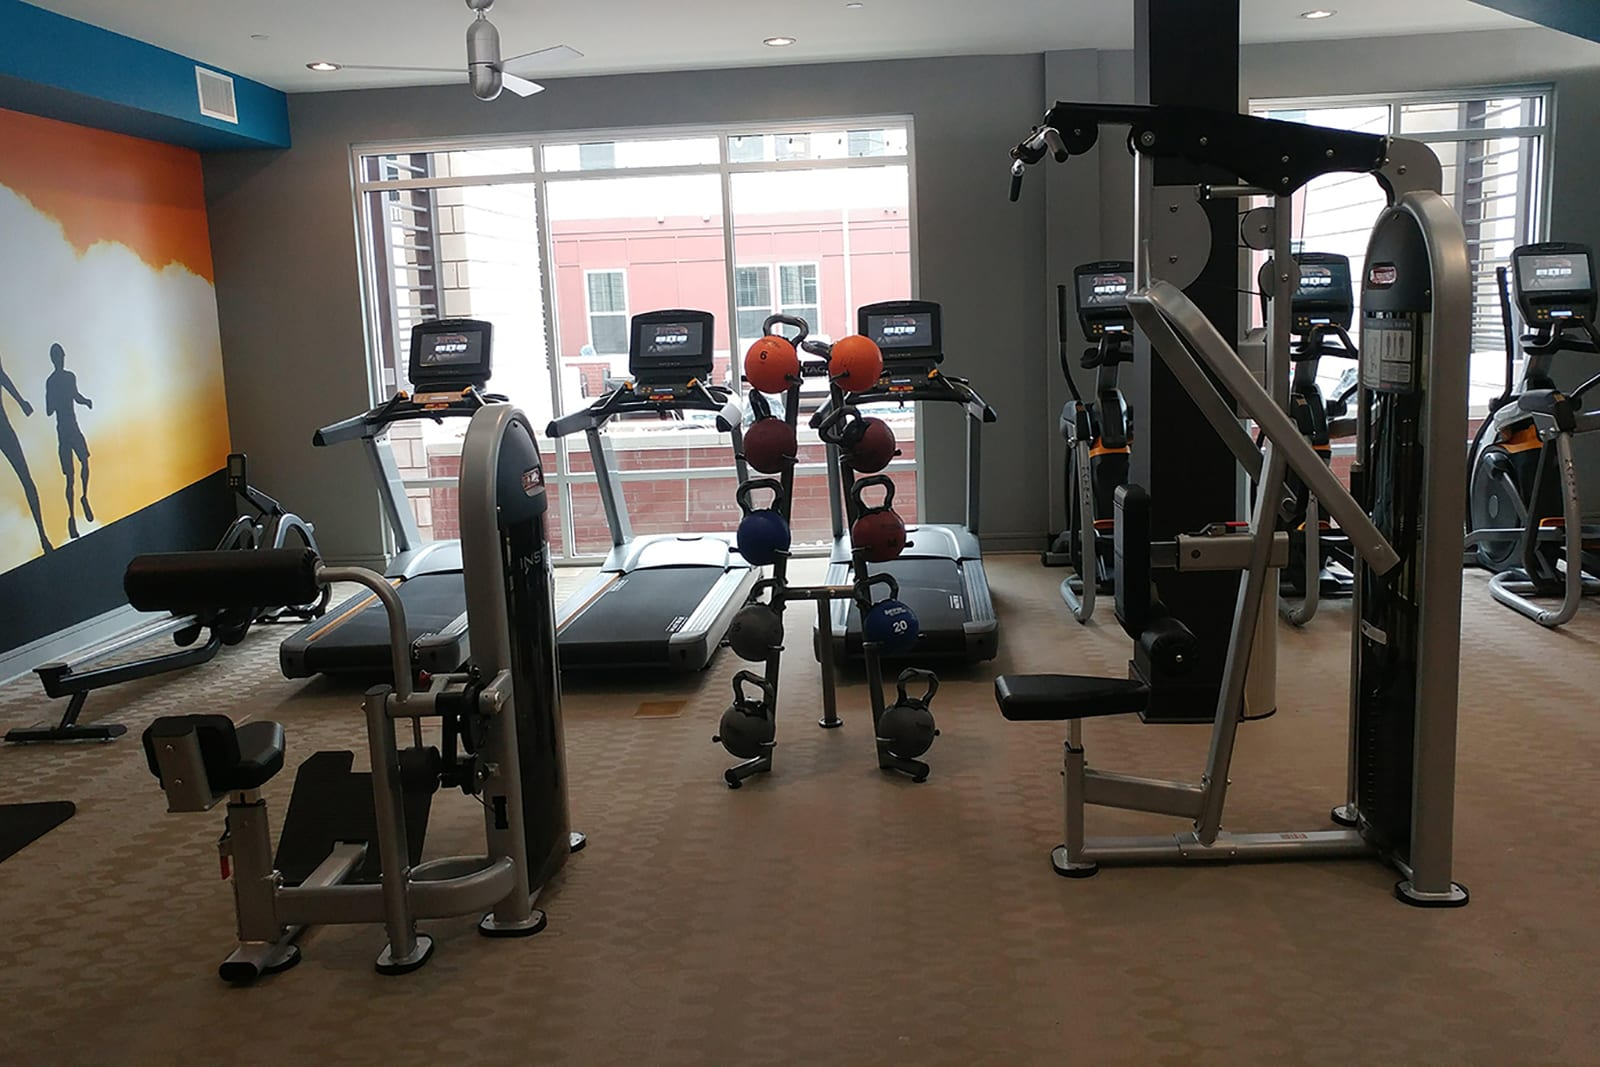 The Fitness Center Is Open 24/7 at Centric LoHi by Windsor, Denver, Colorado